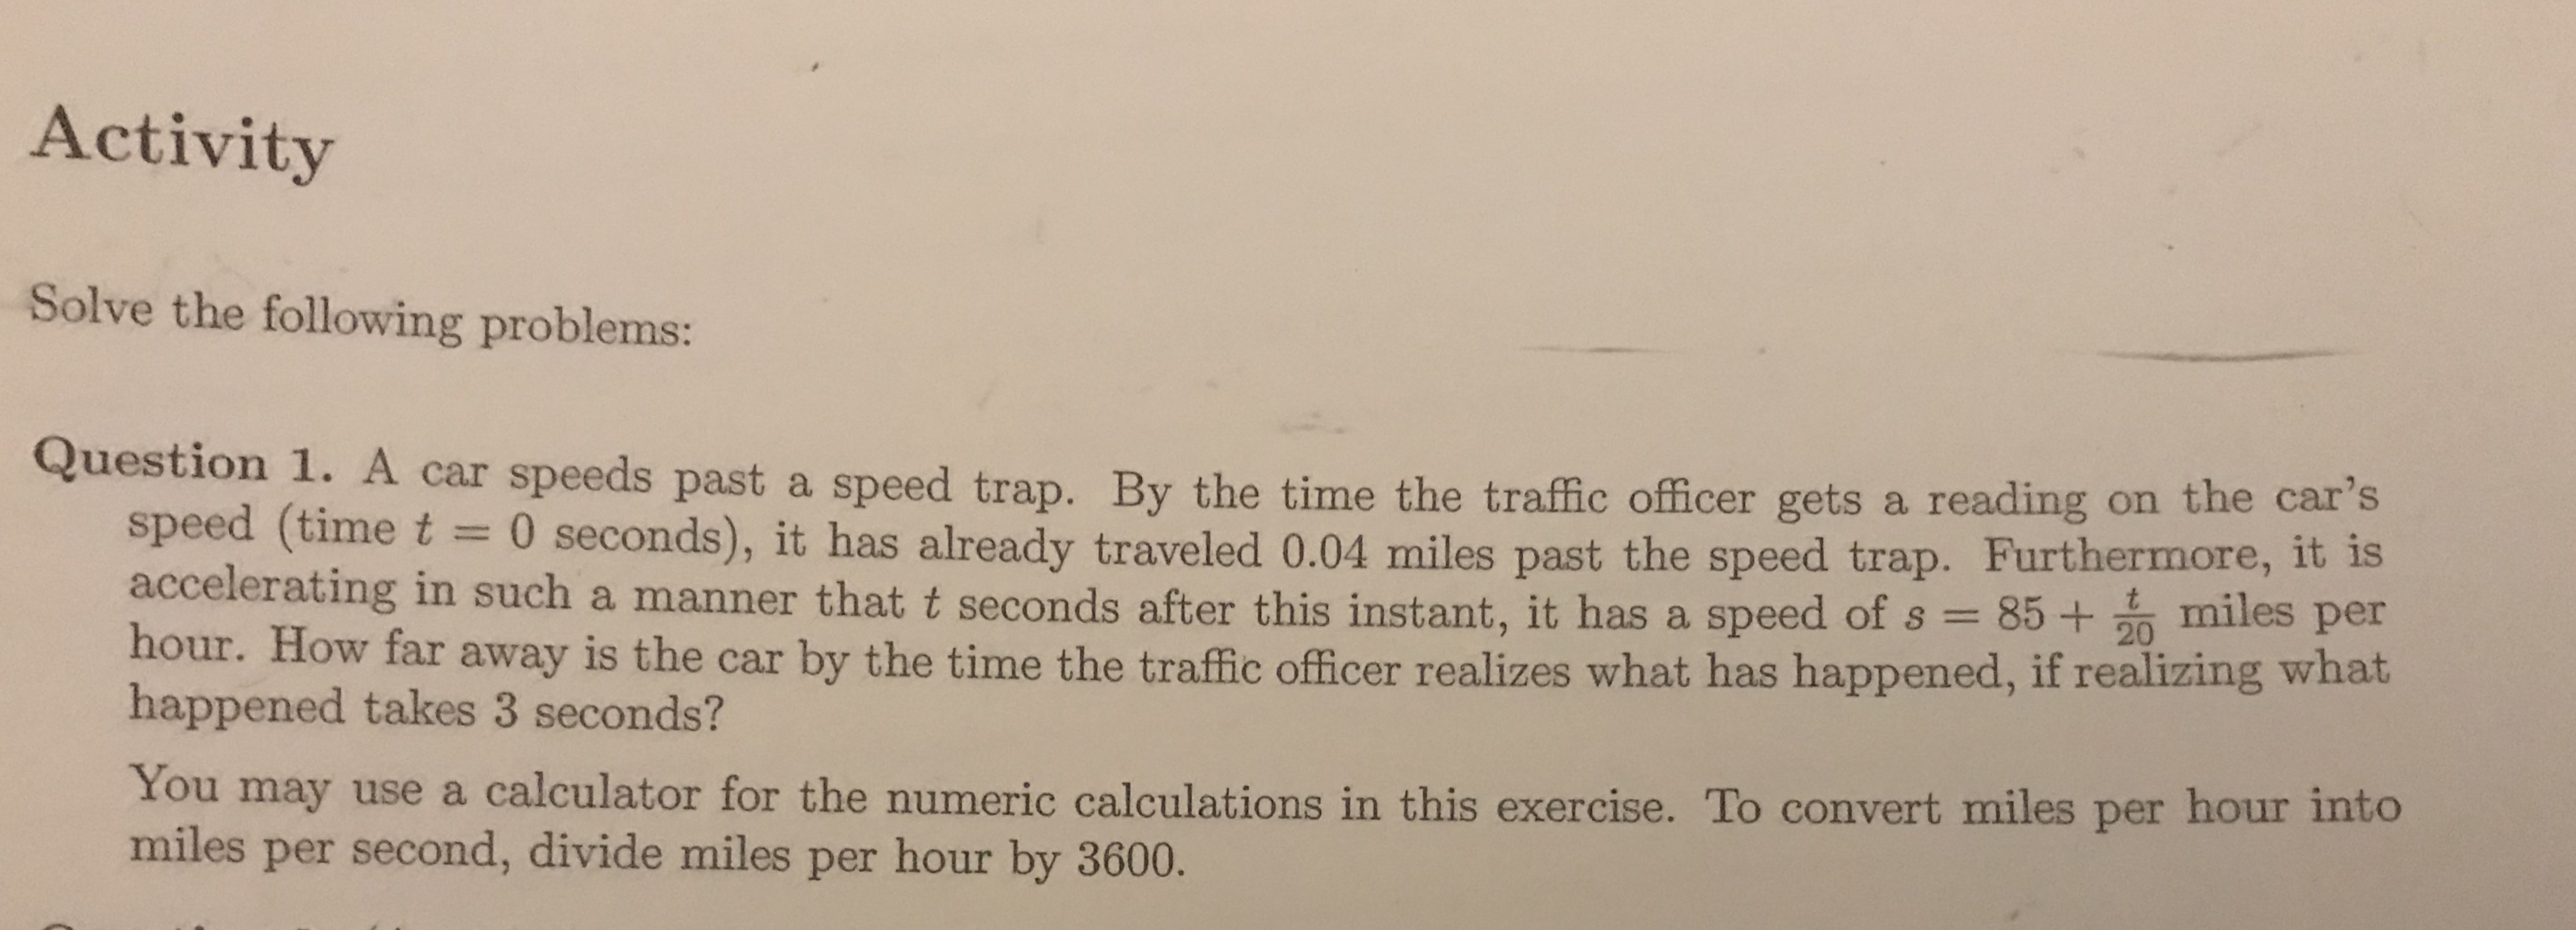 Activity Solve the following problems: Question 1. A car speeds past a speed trap. By the time the traffic officer gets a reading on the car's speed (time t 0 seconds), it has already traveled 0.04 miles past the speed trap. Furthermore, it is accelerating in such a manner that t seconds after this instant, it has a speed of s 852 miles per hour. How far away is the car by the time the traffic officer realizes what has happened, if realizing what happened takes 3 seconds? You may use a calculator for the numeric calculations in this exercise. To convert miles per hour into miles per second, divide miles per hour by 3600.